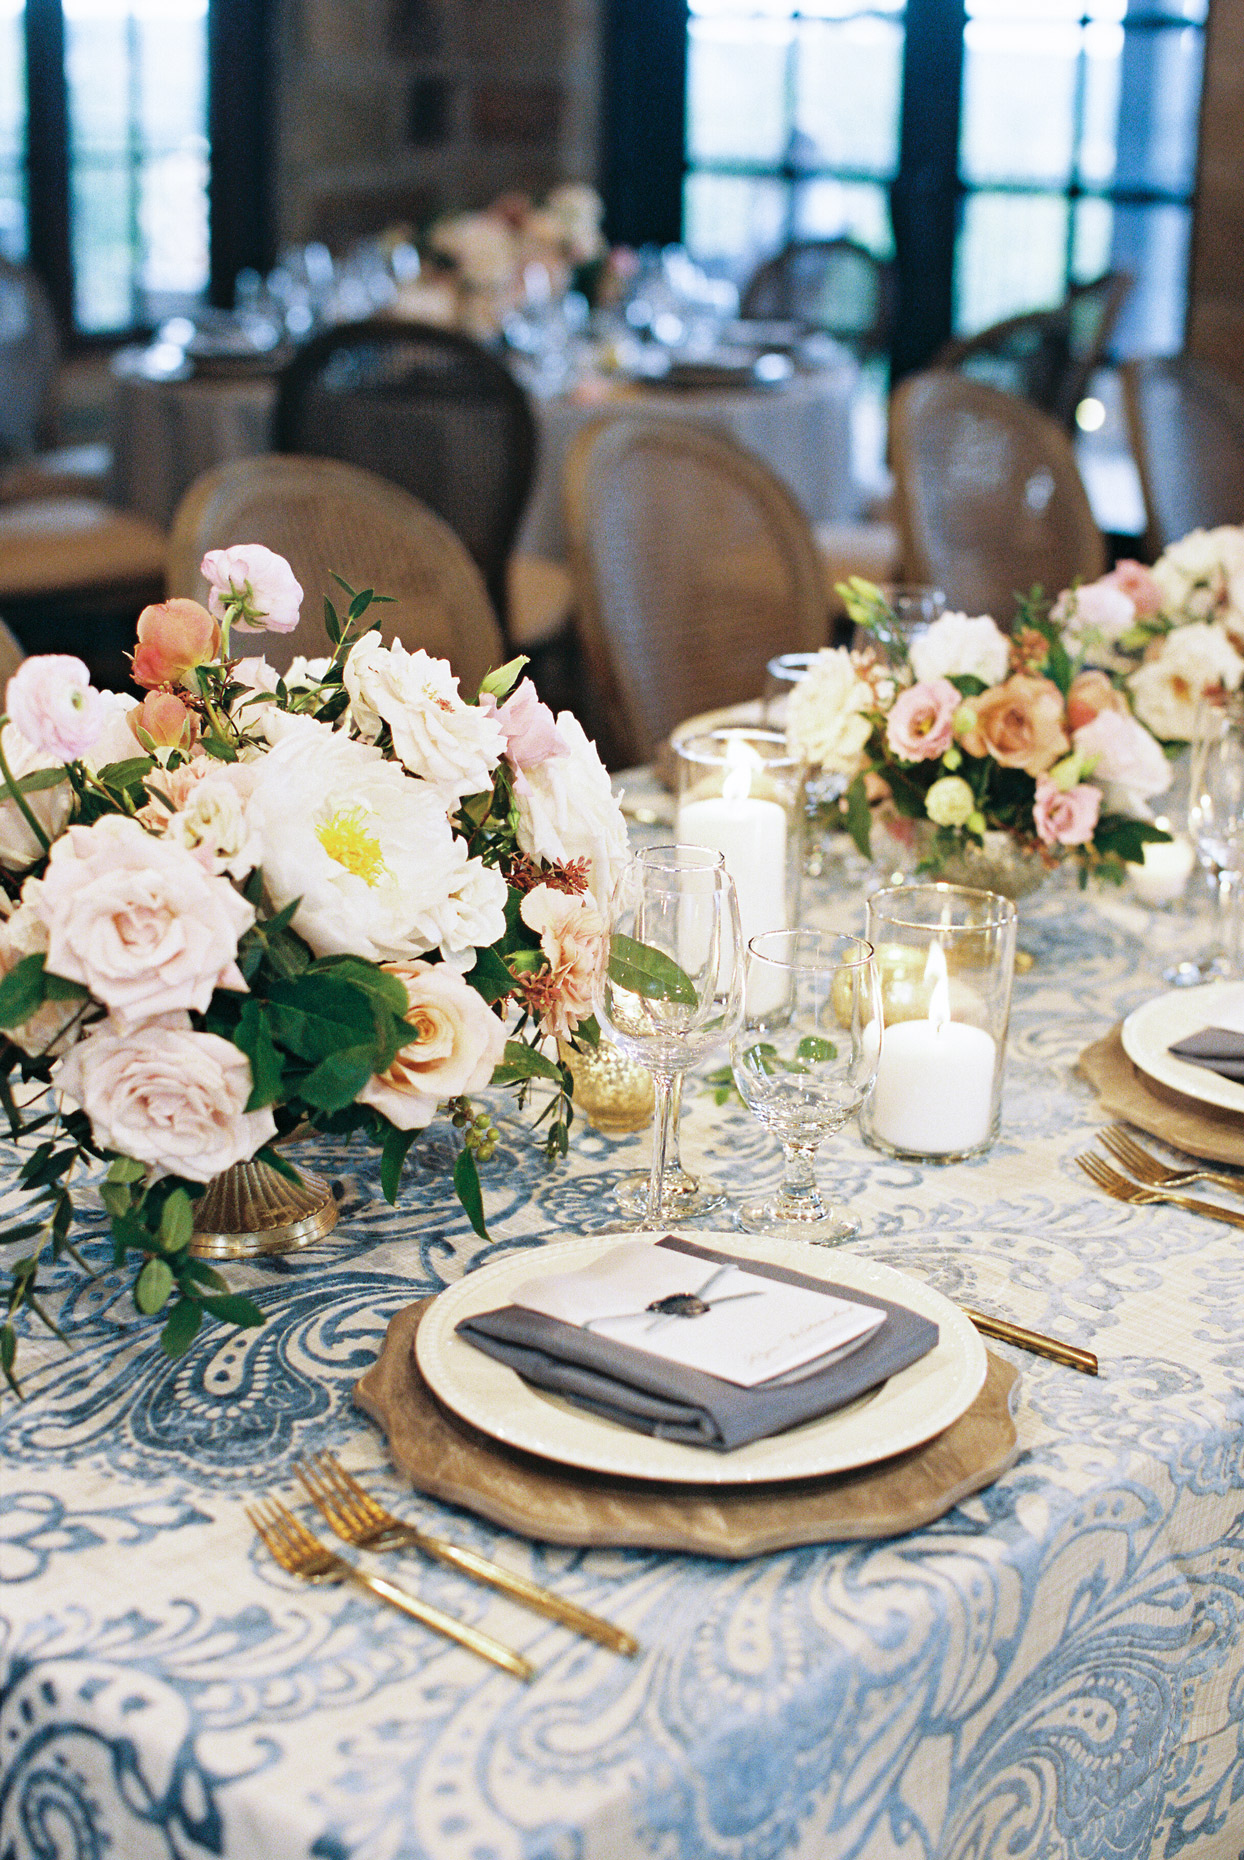 white and blue paisley print table cloth covered reception table